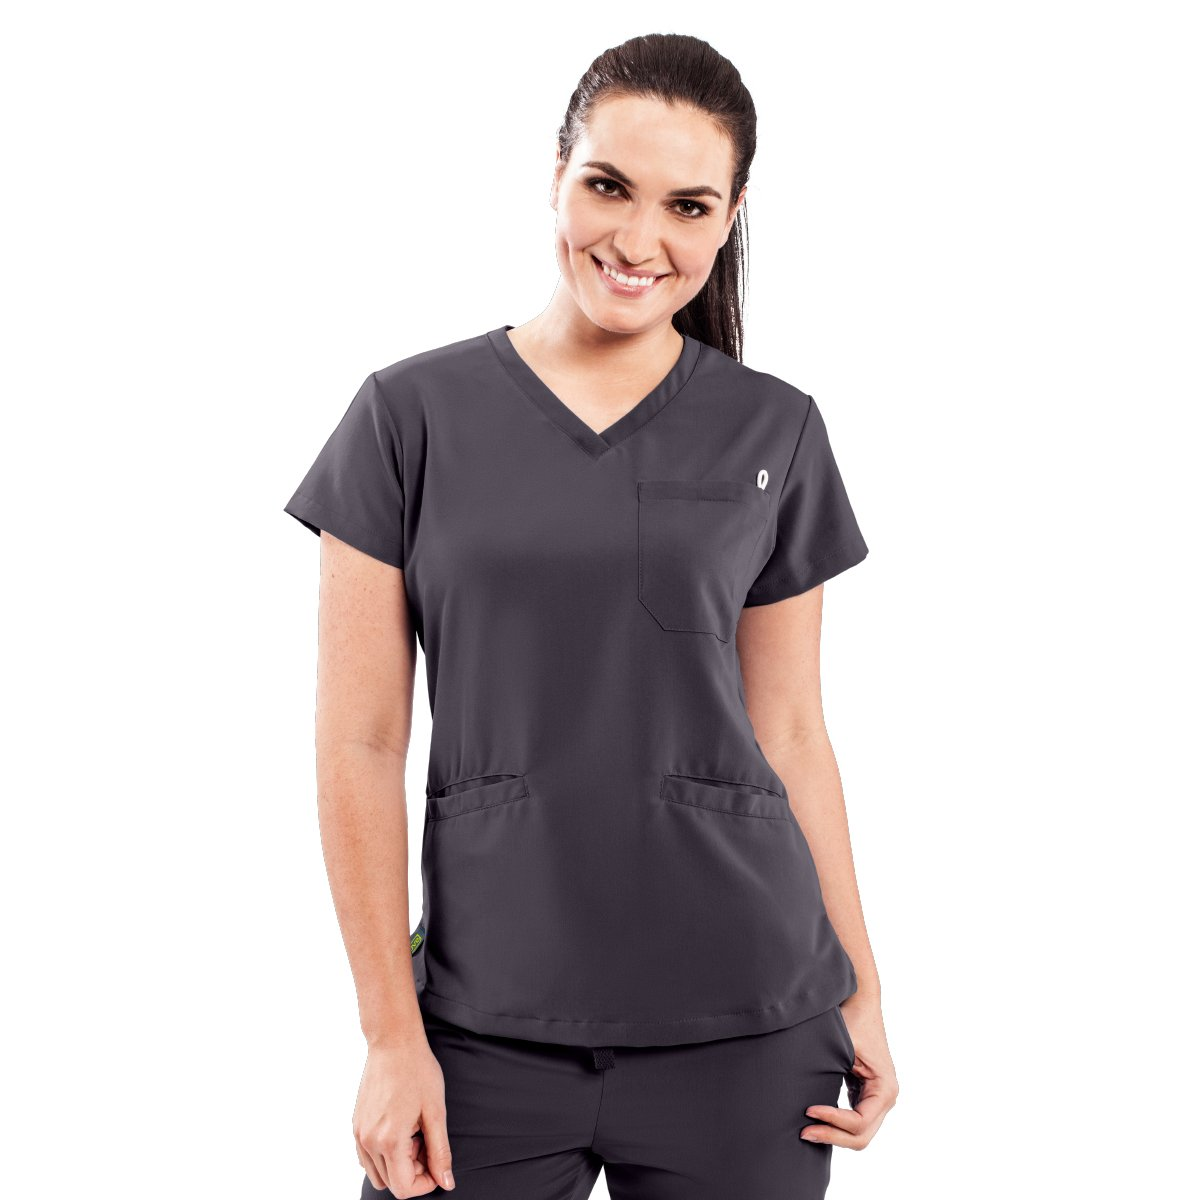 ave Women's Medical Scrub Top, Berkeley ave, V-Neck Scrub Shirt, 2 Pockets, Wrinkle Resistant, Great for Nurses, Charcoal, Small